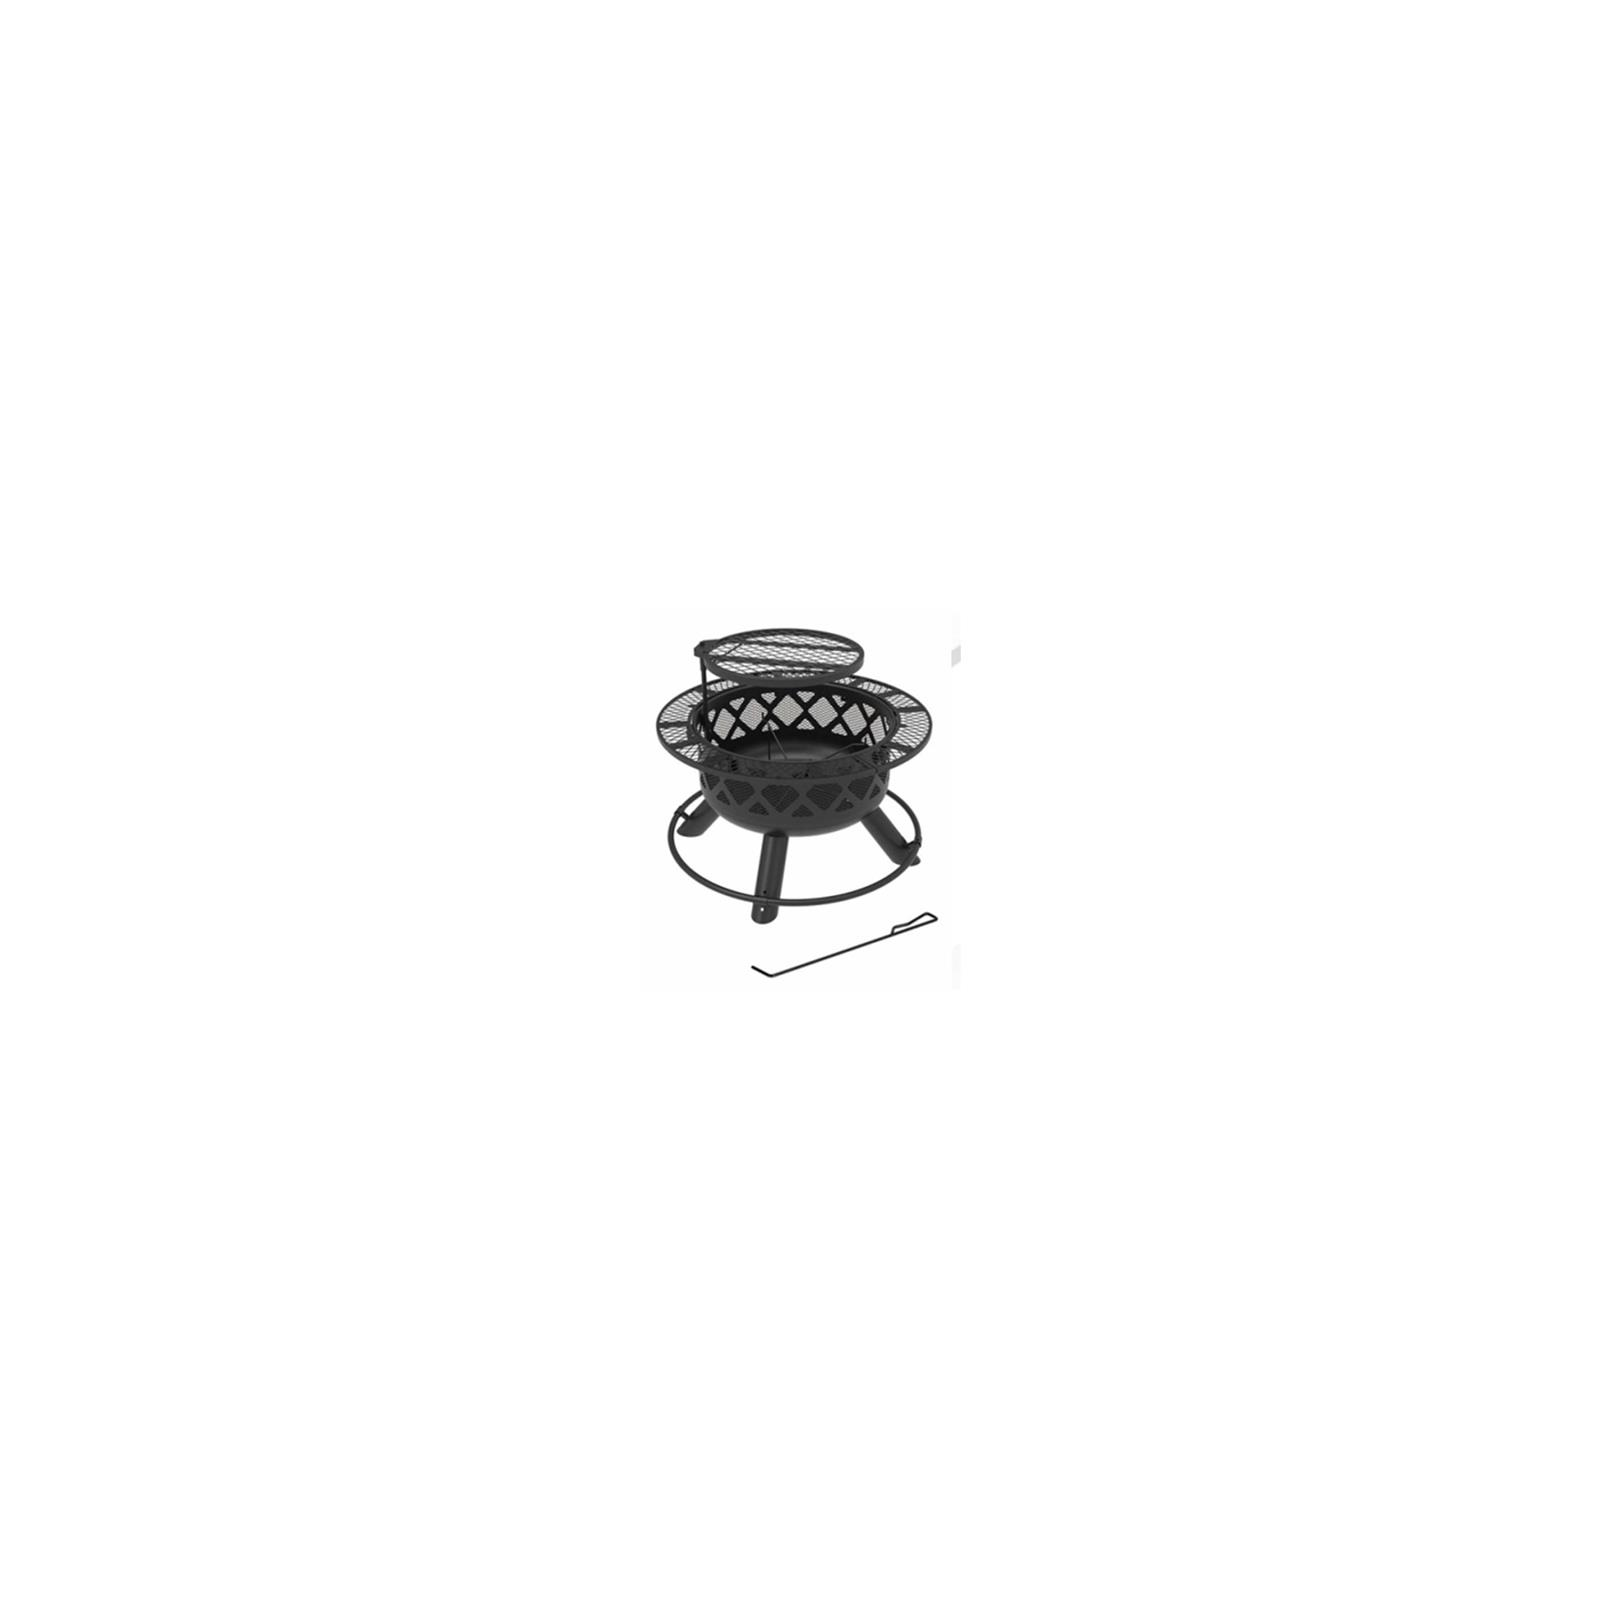 thumbnail 2 - SRFP9624 Ranch Fire Pit With Side Tables & Grill Top, 24-In. - Quantity 1